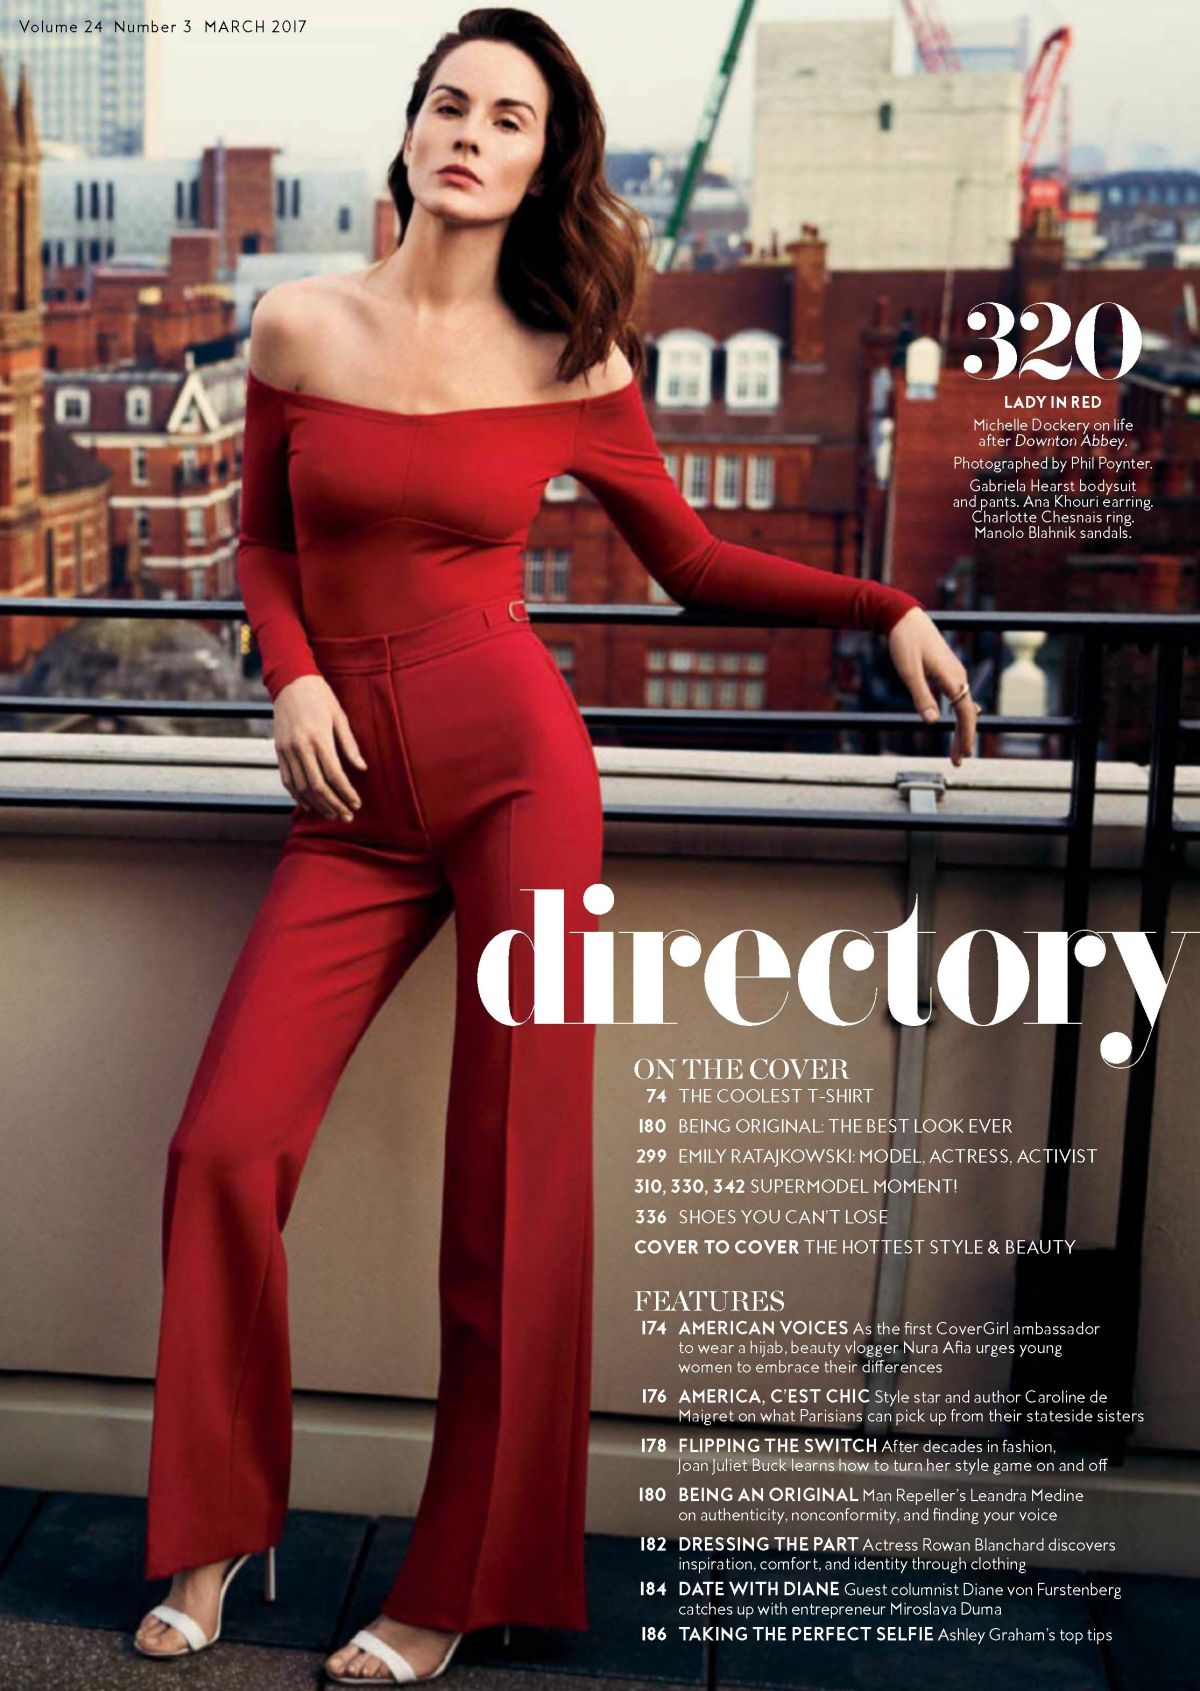 Selena Gomez Instyle >> MICHELLE DOCKERY in Instyle Magazine, March 2017 Issue - HawtCelebs